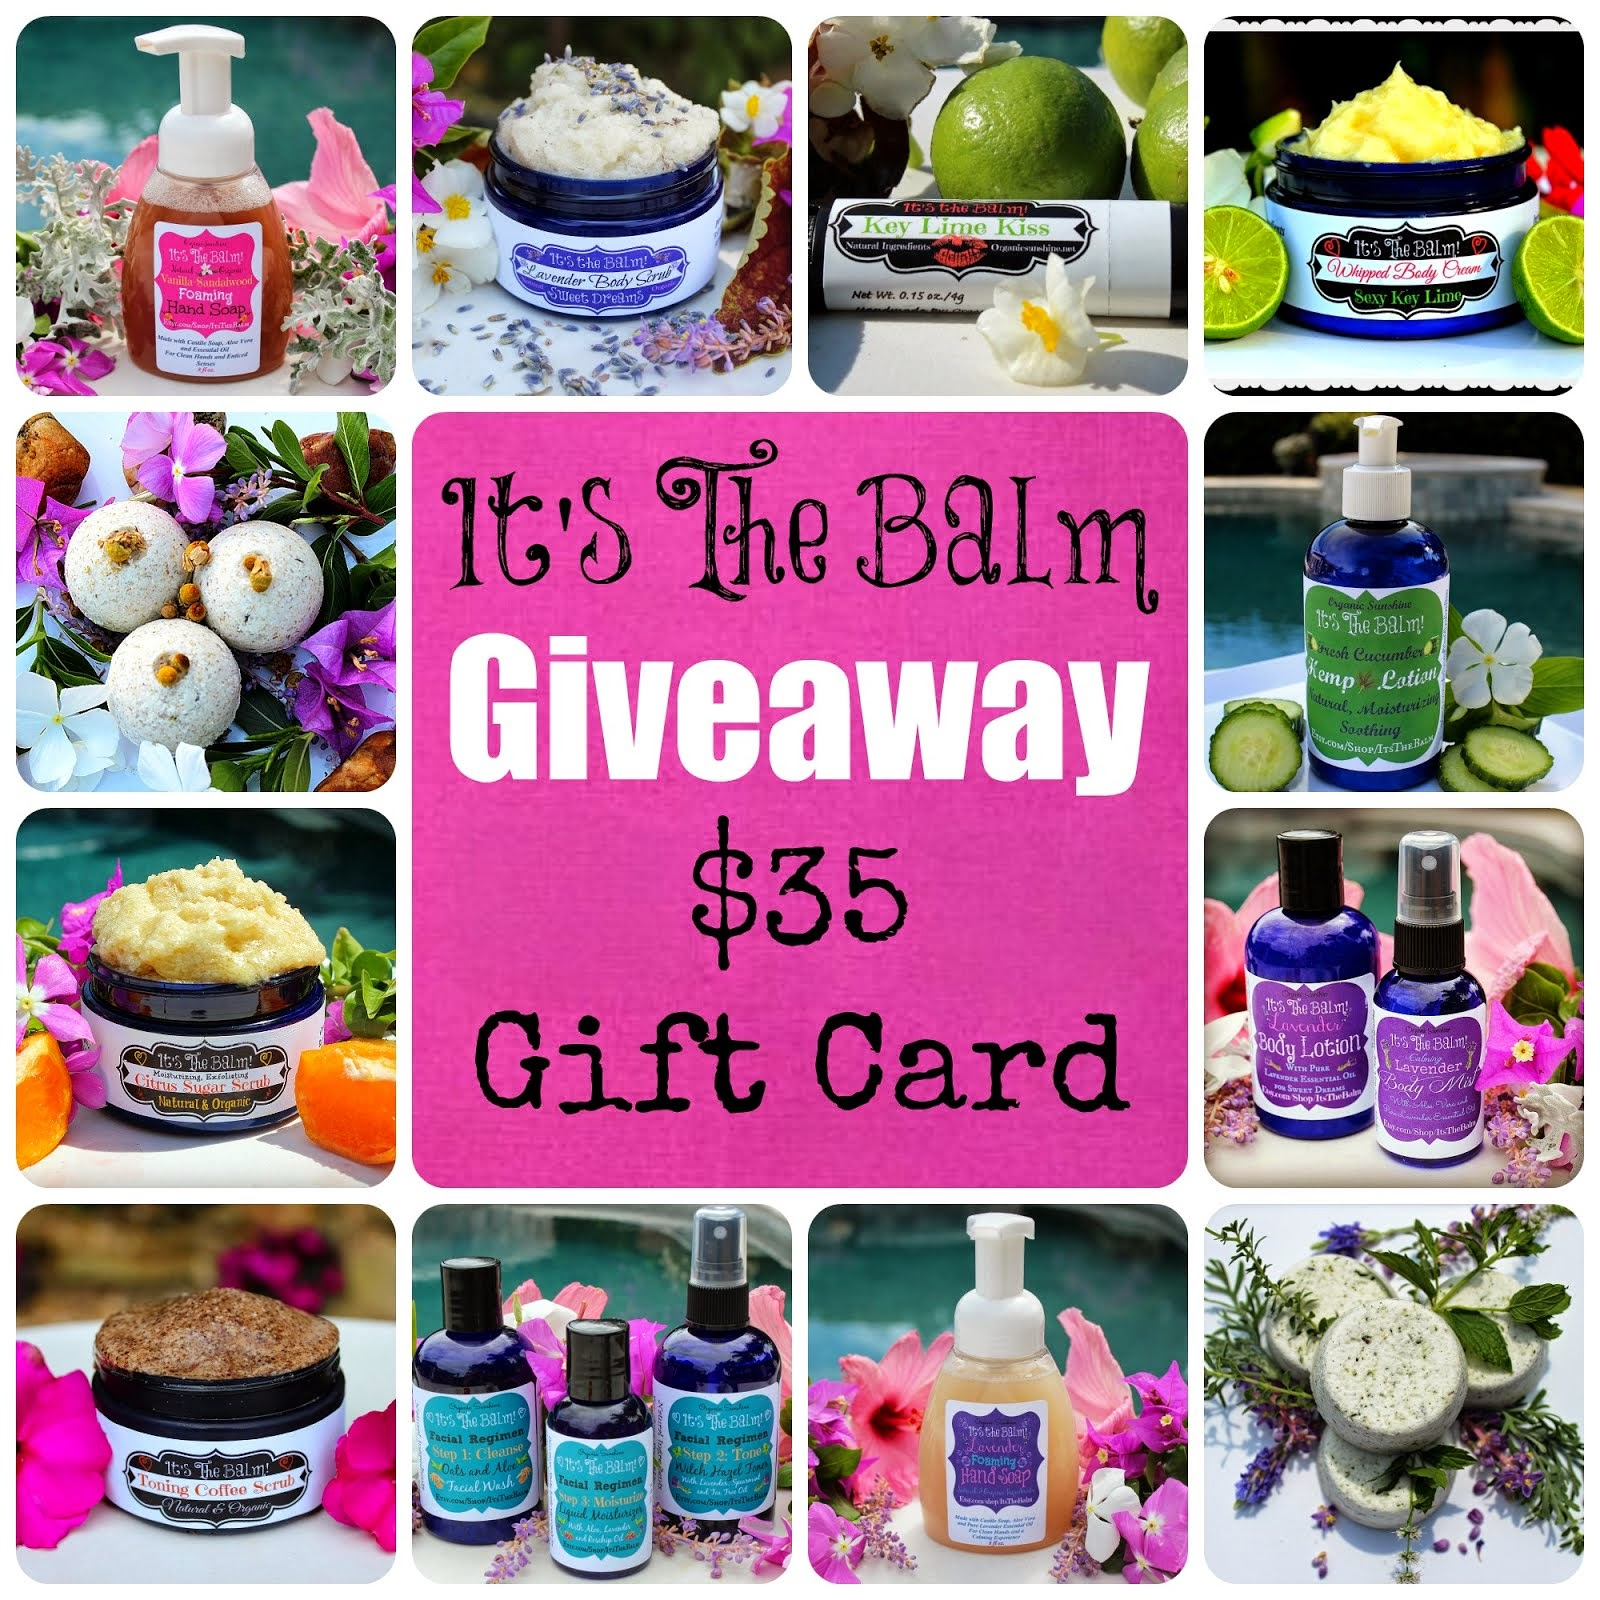 Giveaway WW Ends 1/31